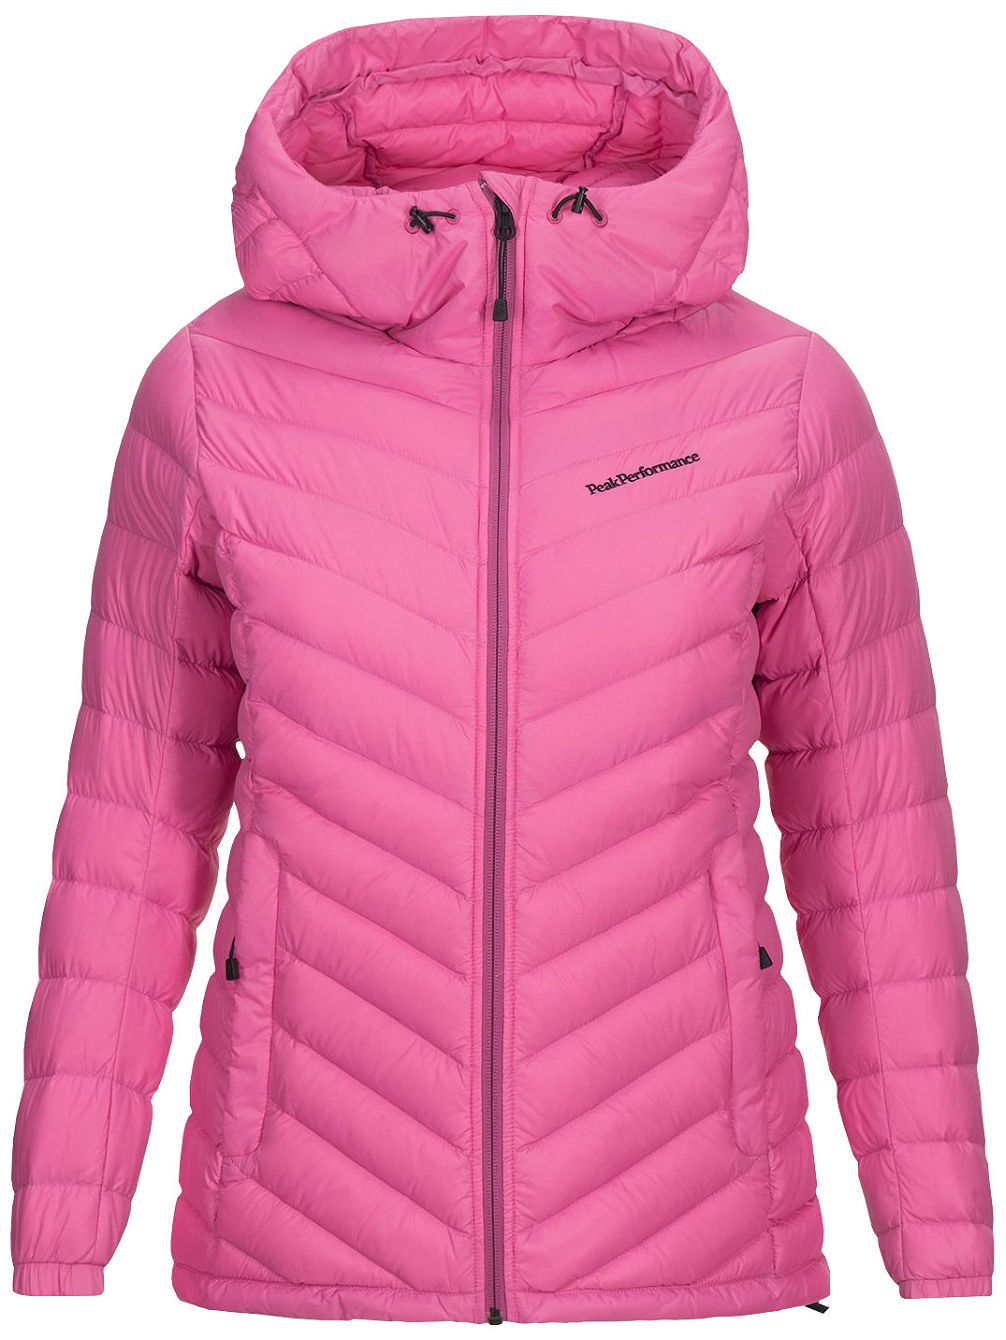 Buy Peak Performance Frost Down Hood Jacket online at blue-tomato.com 84c243a53e